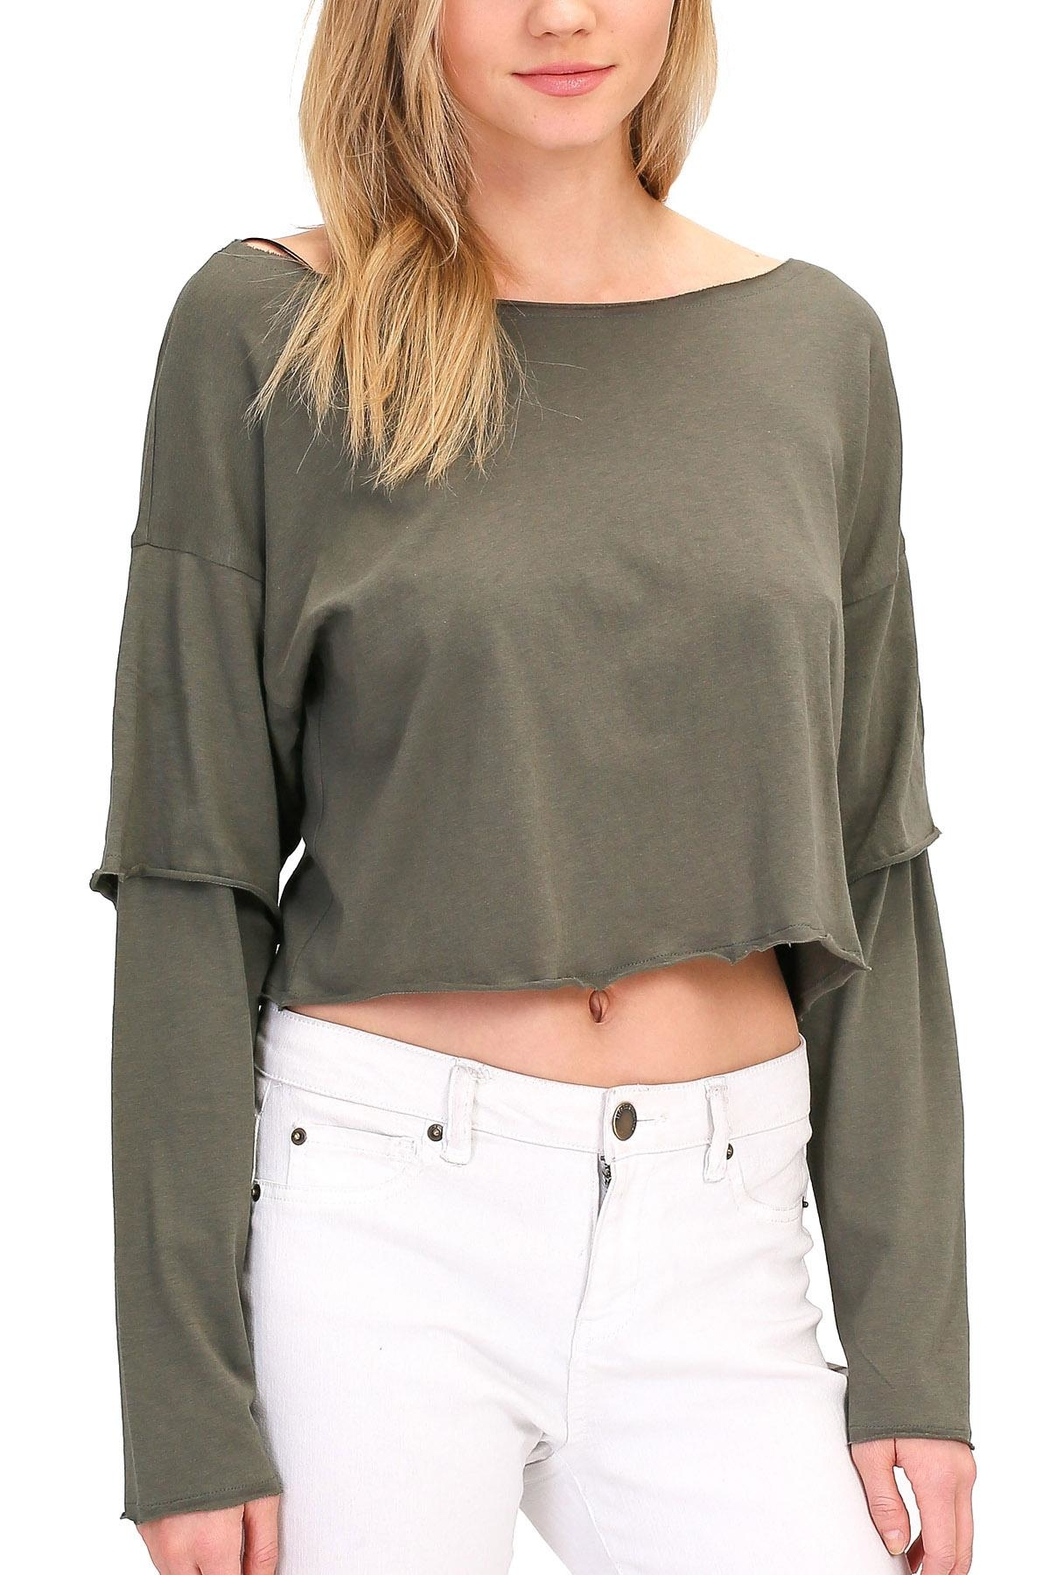 Double Zero Sleeve Detail Top - Front Cropped Image